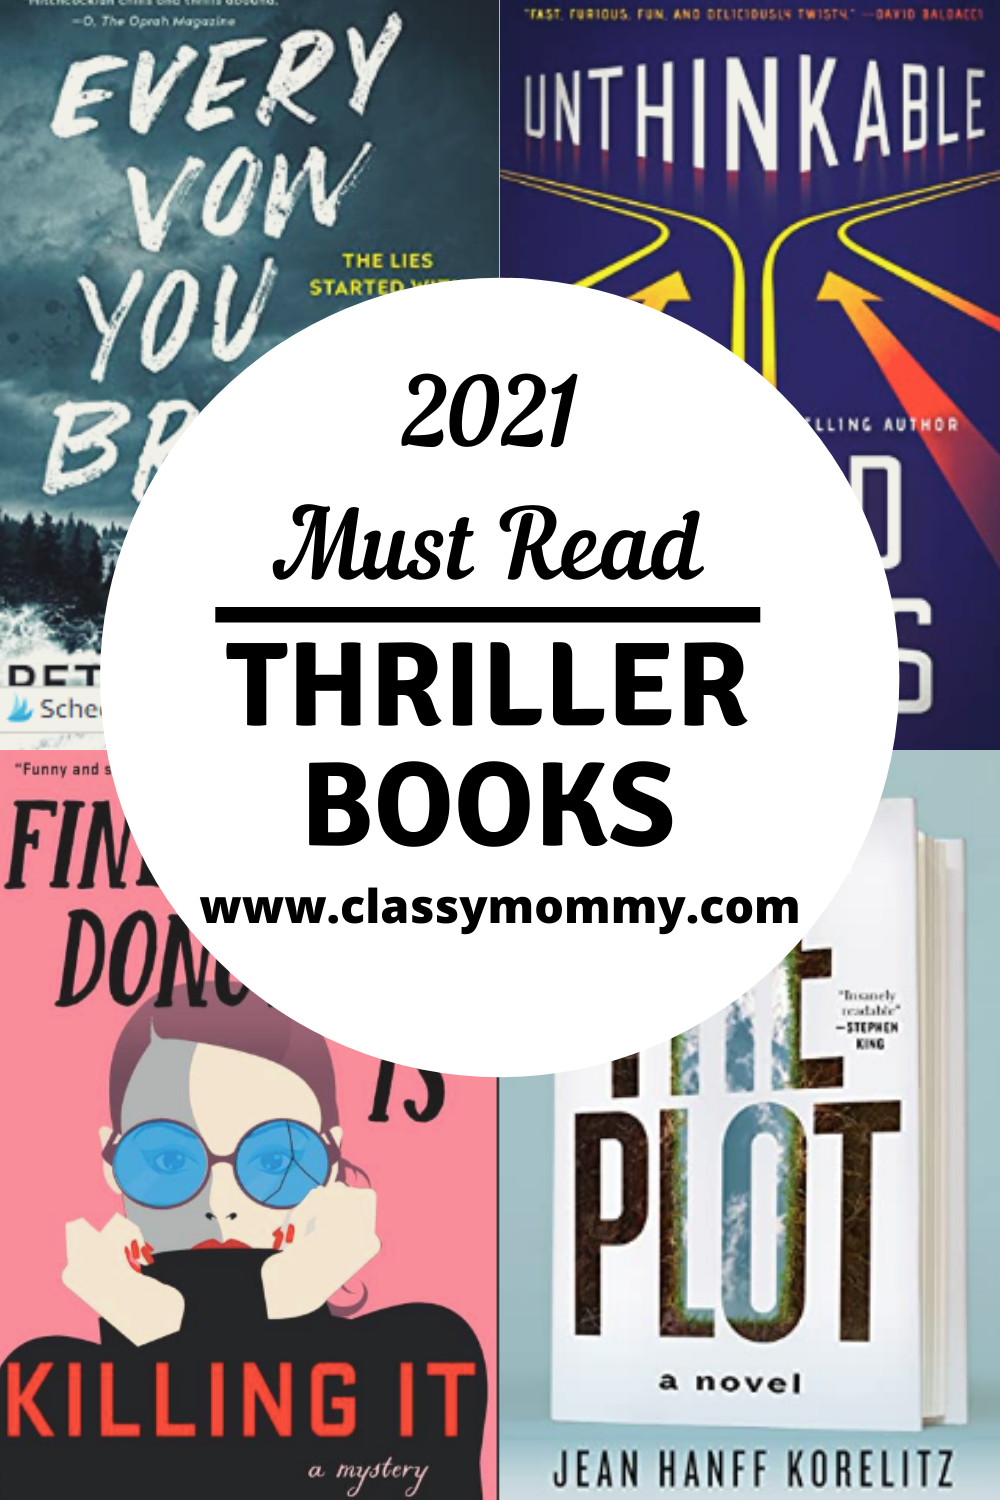 Top 10 Must Read Thriller Books from 2021